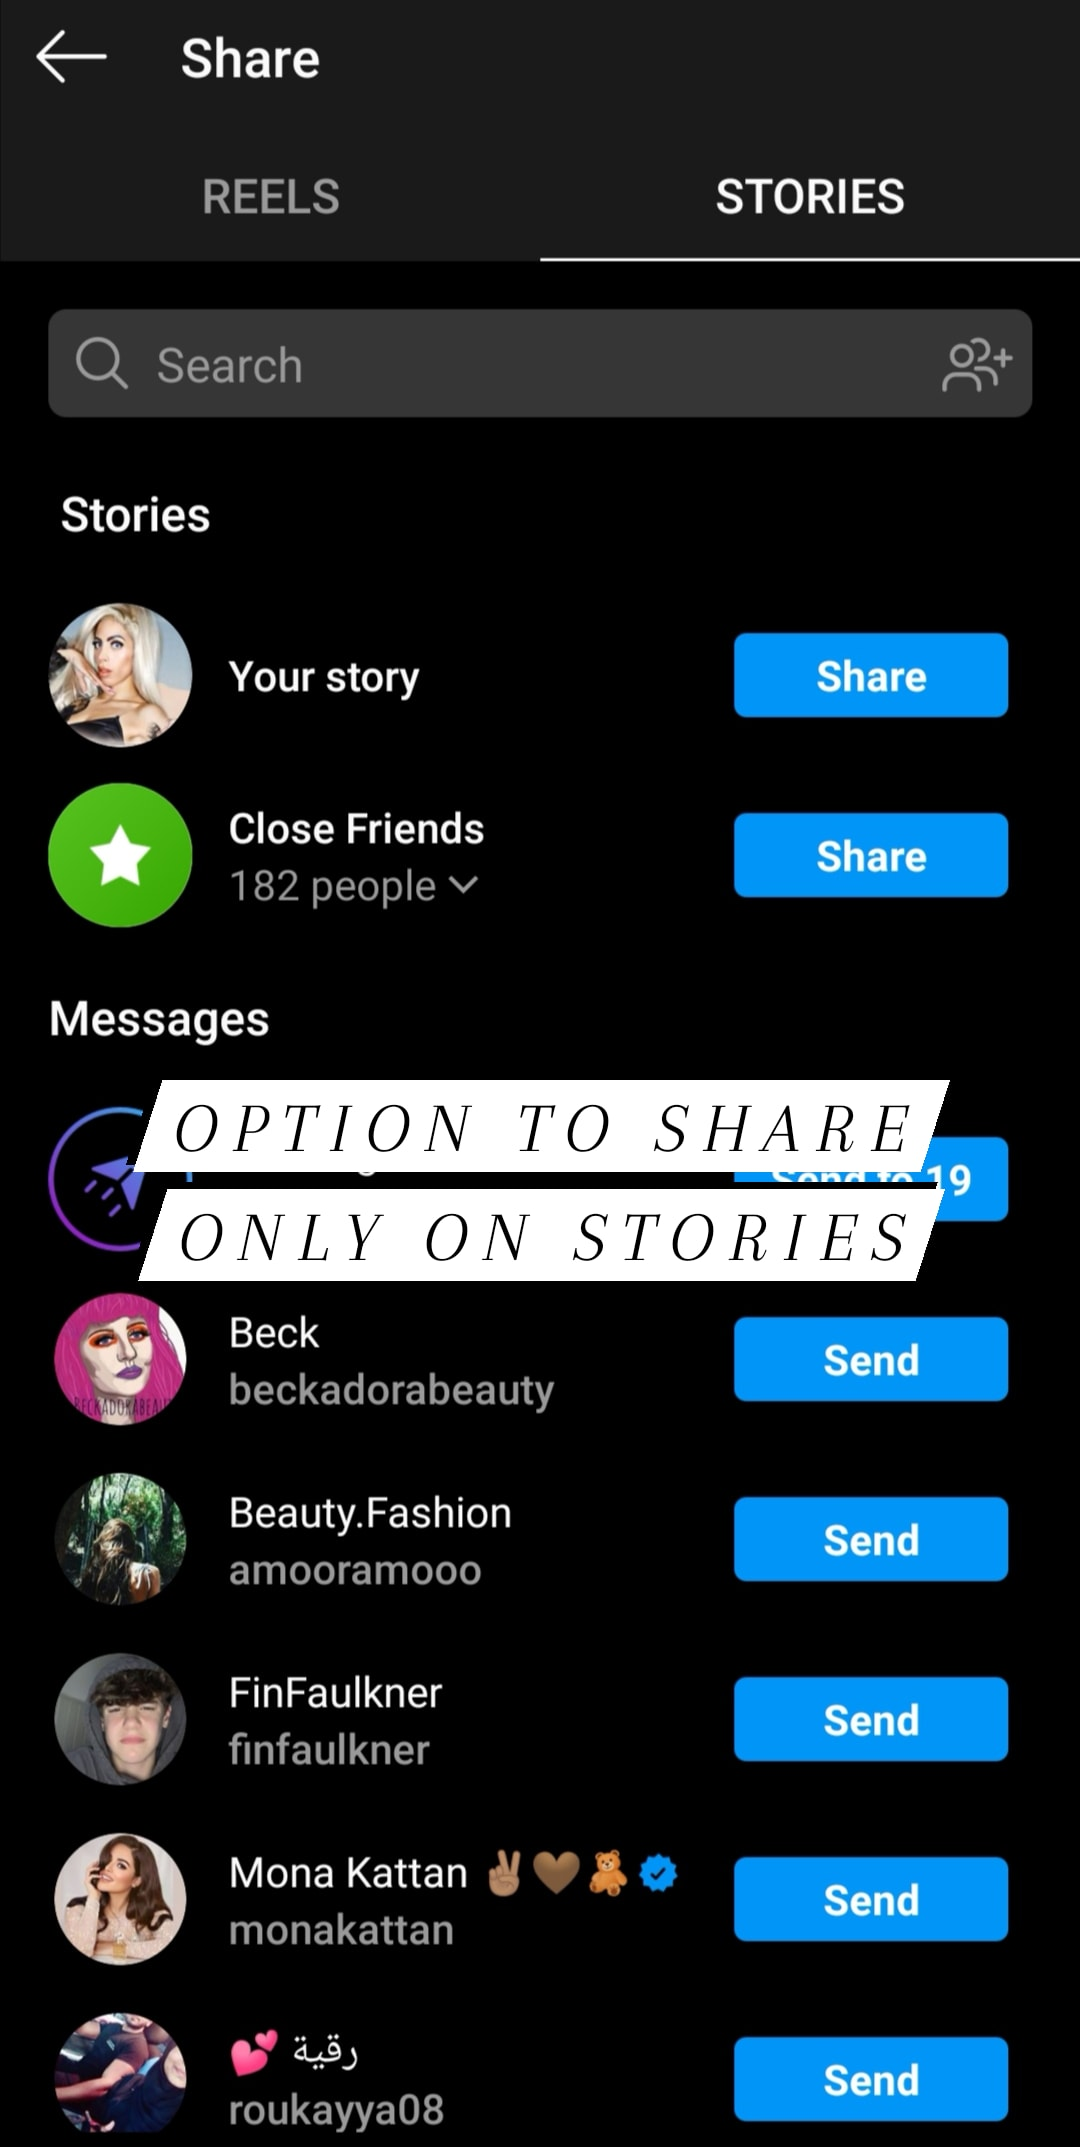 Share reels on your IG story